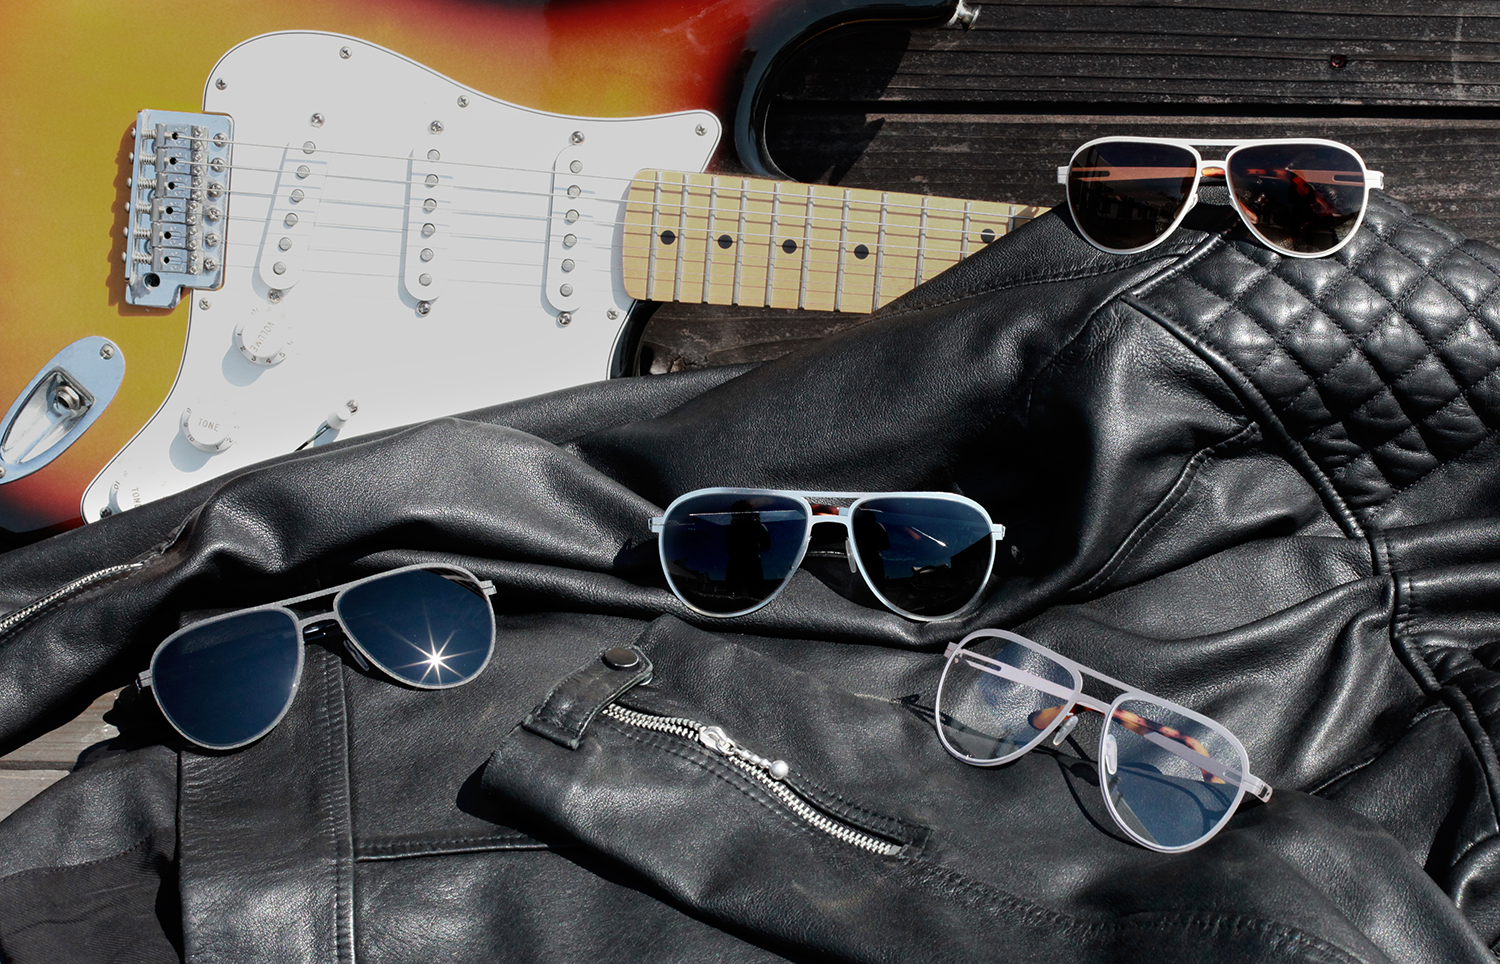 Range of custom-fit aviator sunglasses and eyeglasses from Topology eyewear.